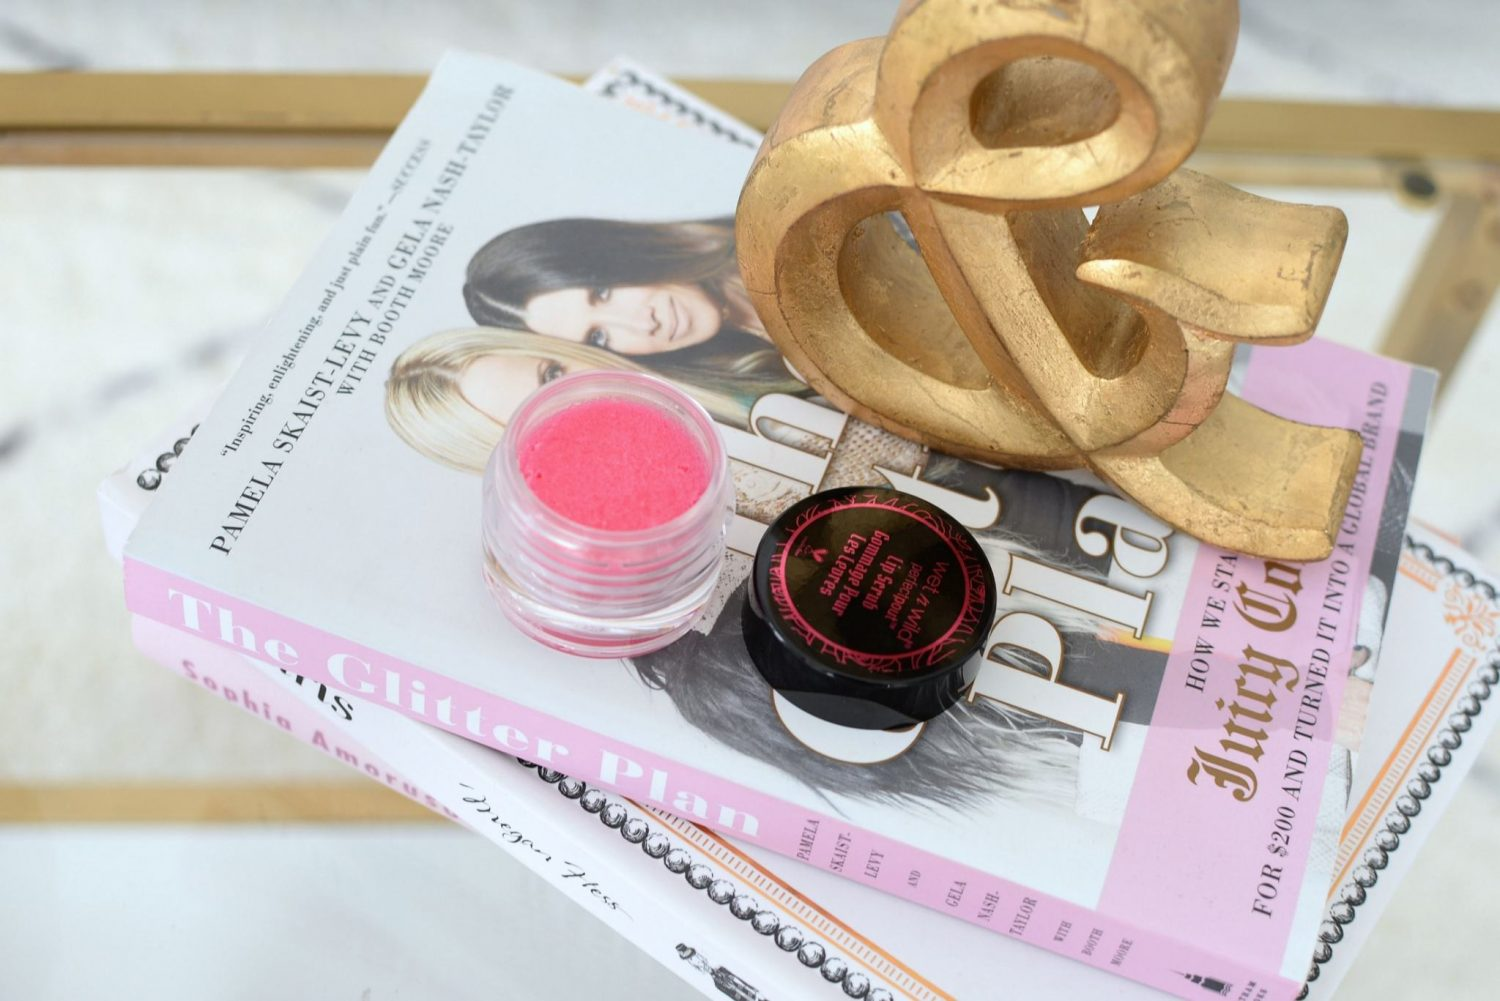 Rebel Rose Perfect Pout Lip Scrub